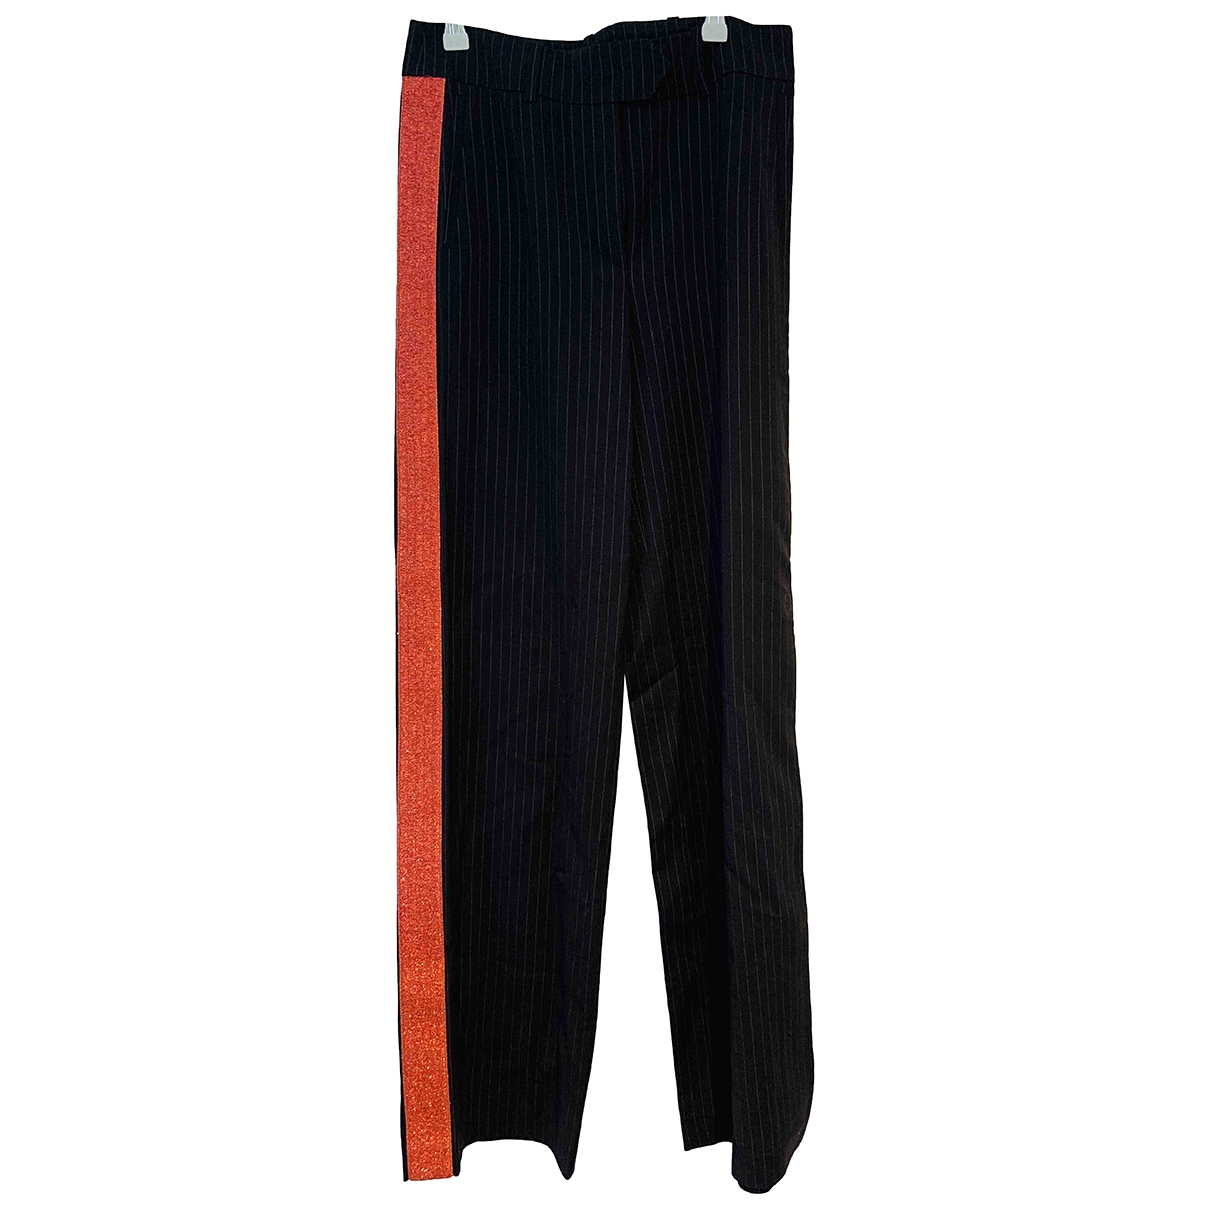 Mira Mikati \N Navy Trousers for Women 34 FR